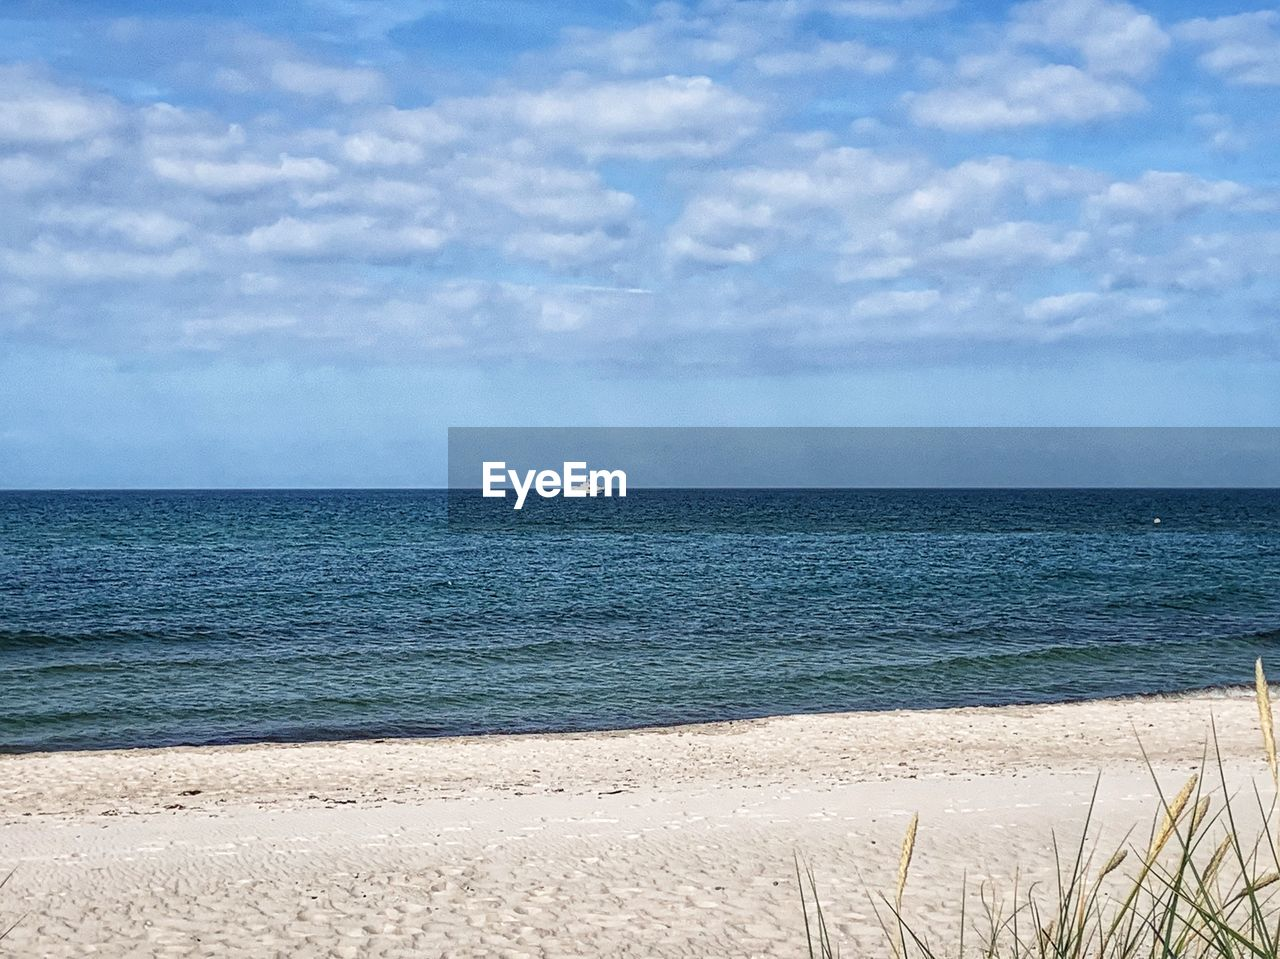 sea, water, sky, horizon over water, scenics - nature, horizon, beauty in nature, beach, tranquil scene, land, tranquility, cloud - sky, day, nature, idyllic, sand, no people, non-urban scene, outdoors, marram grass, turquoise colored